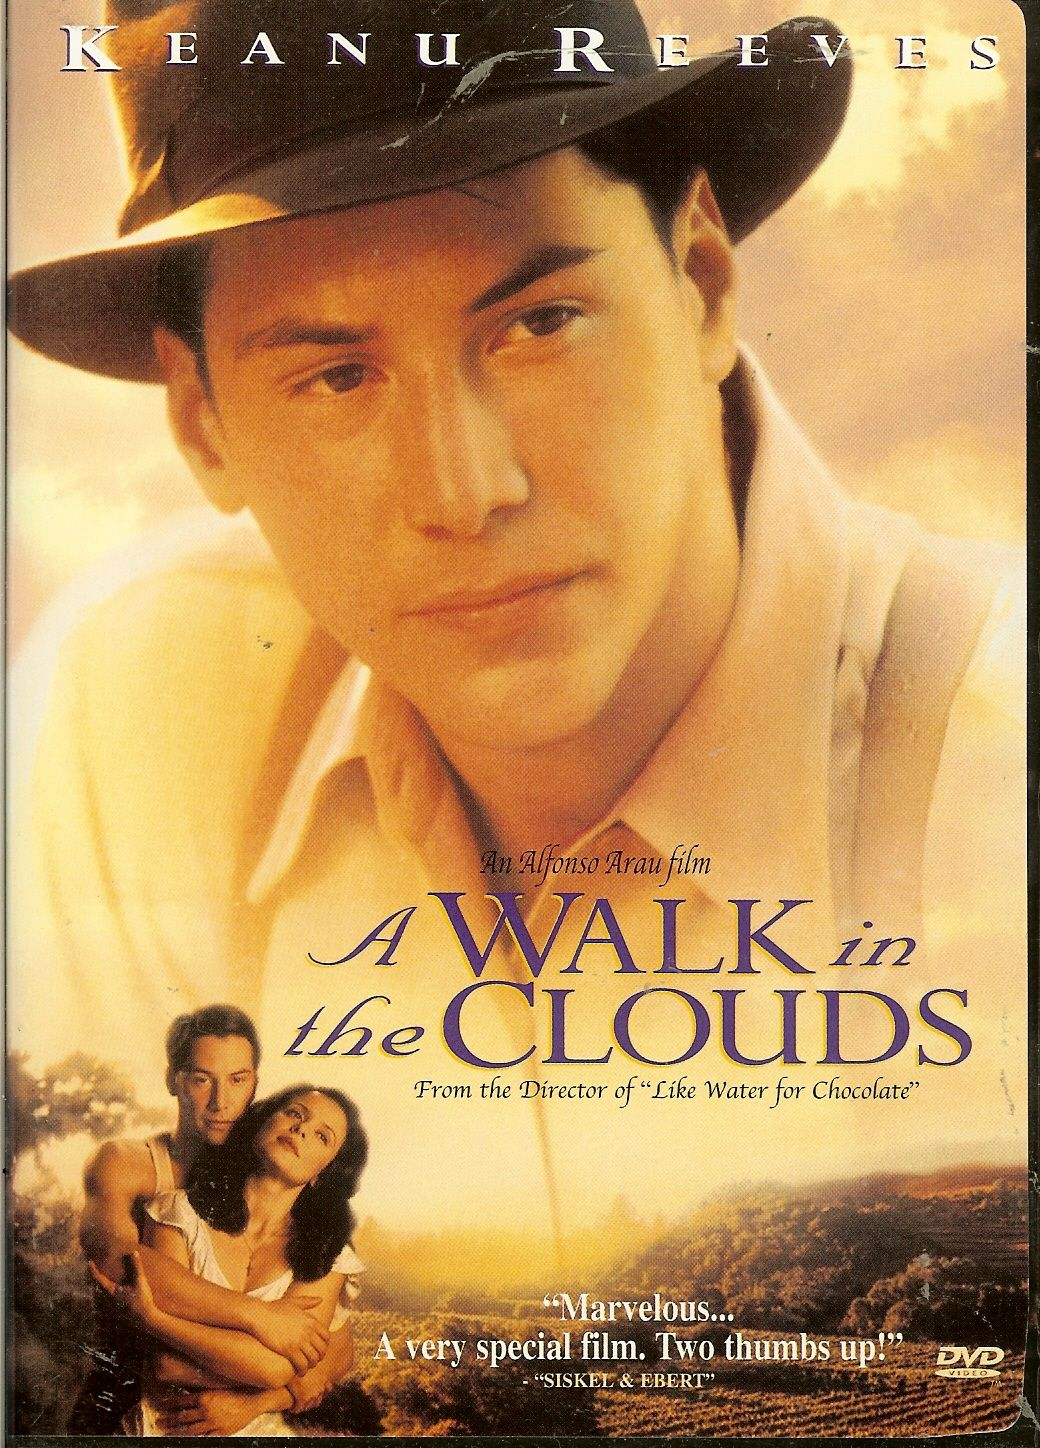 A Walk In The Clouds. After returning from World War II, a young G.I. finds he has little in common with the wife he left behind. Disillusioned, he heads north to work as a travelling salesman where he meets the daughter of a wealthy vineyard owner. On her way home, she is terrified of what her father will do when he learns she is unmarried and pregnant. The young man gallantly offers to help by posing as her husband for one night, unaware that doing so will change both of their lives…